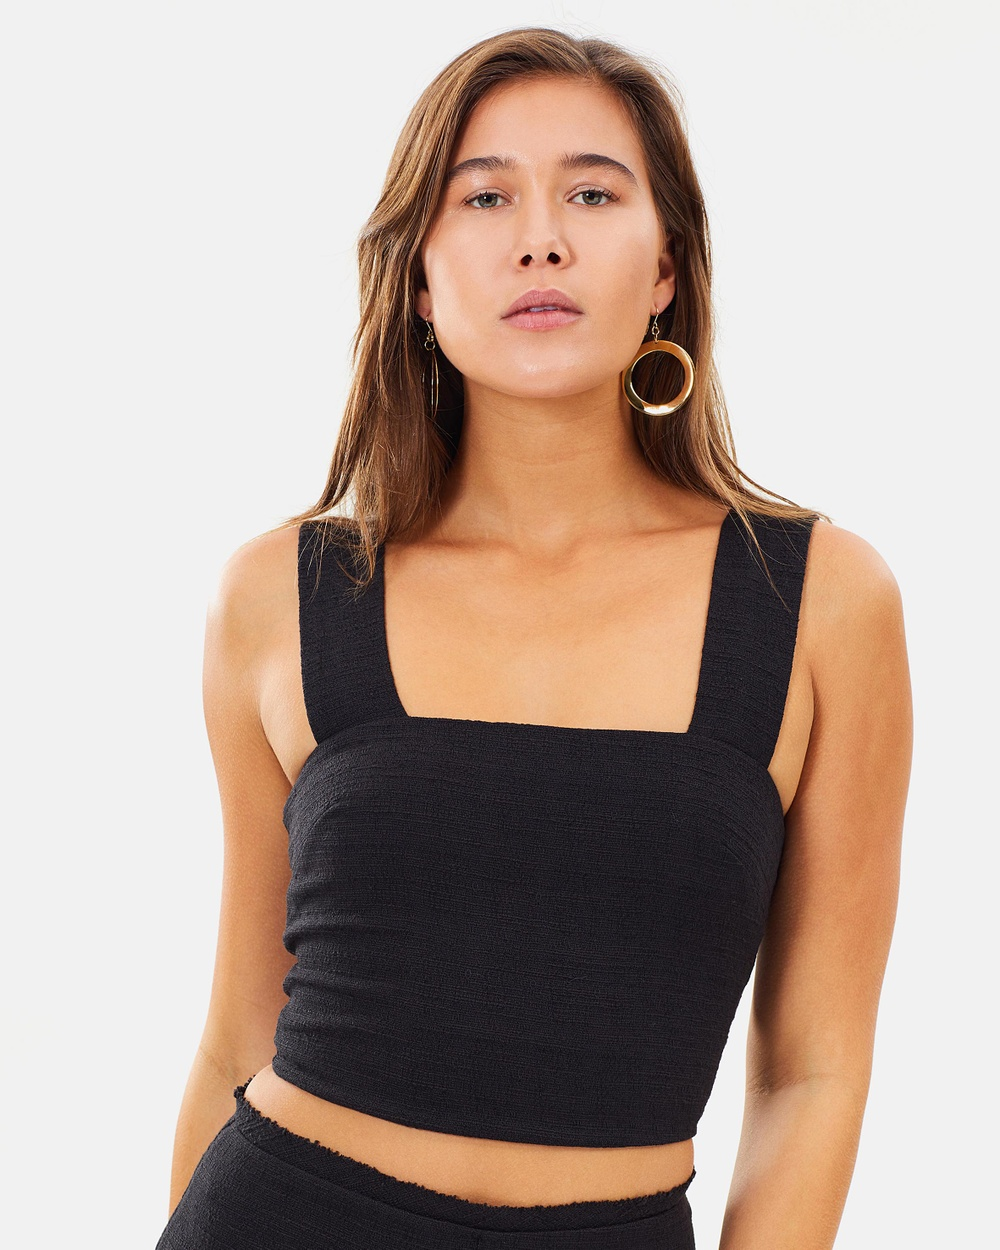 Bec & Bridge Catalina Ave Top Cropped tops Black Catalina Ave Top